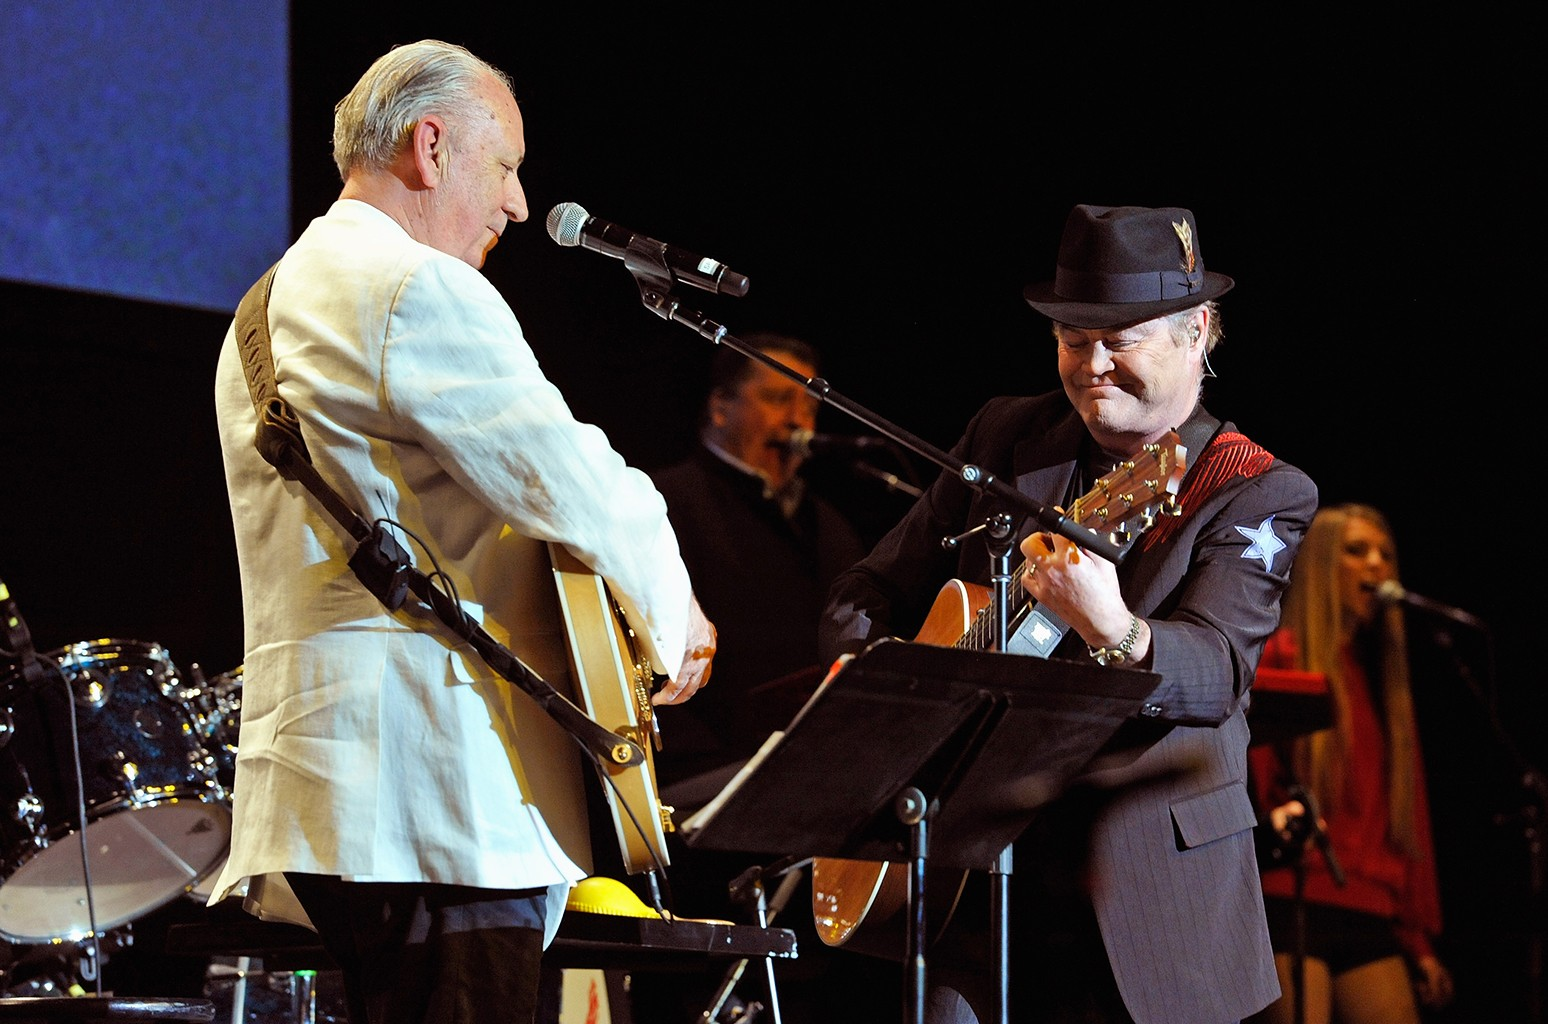 Michael Nesmith Micky Dolenz Monkees